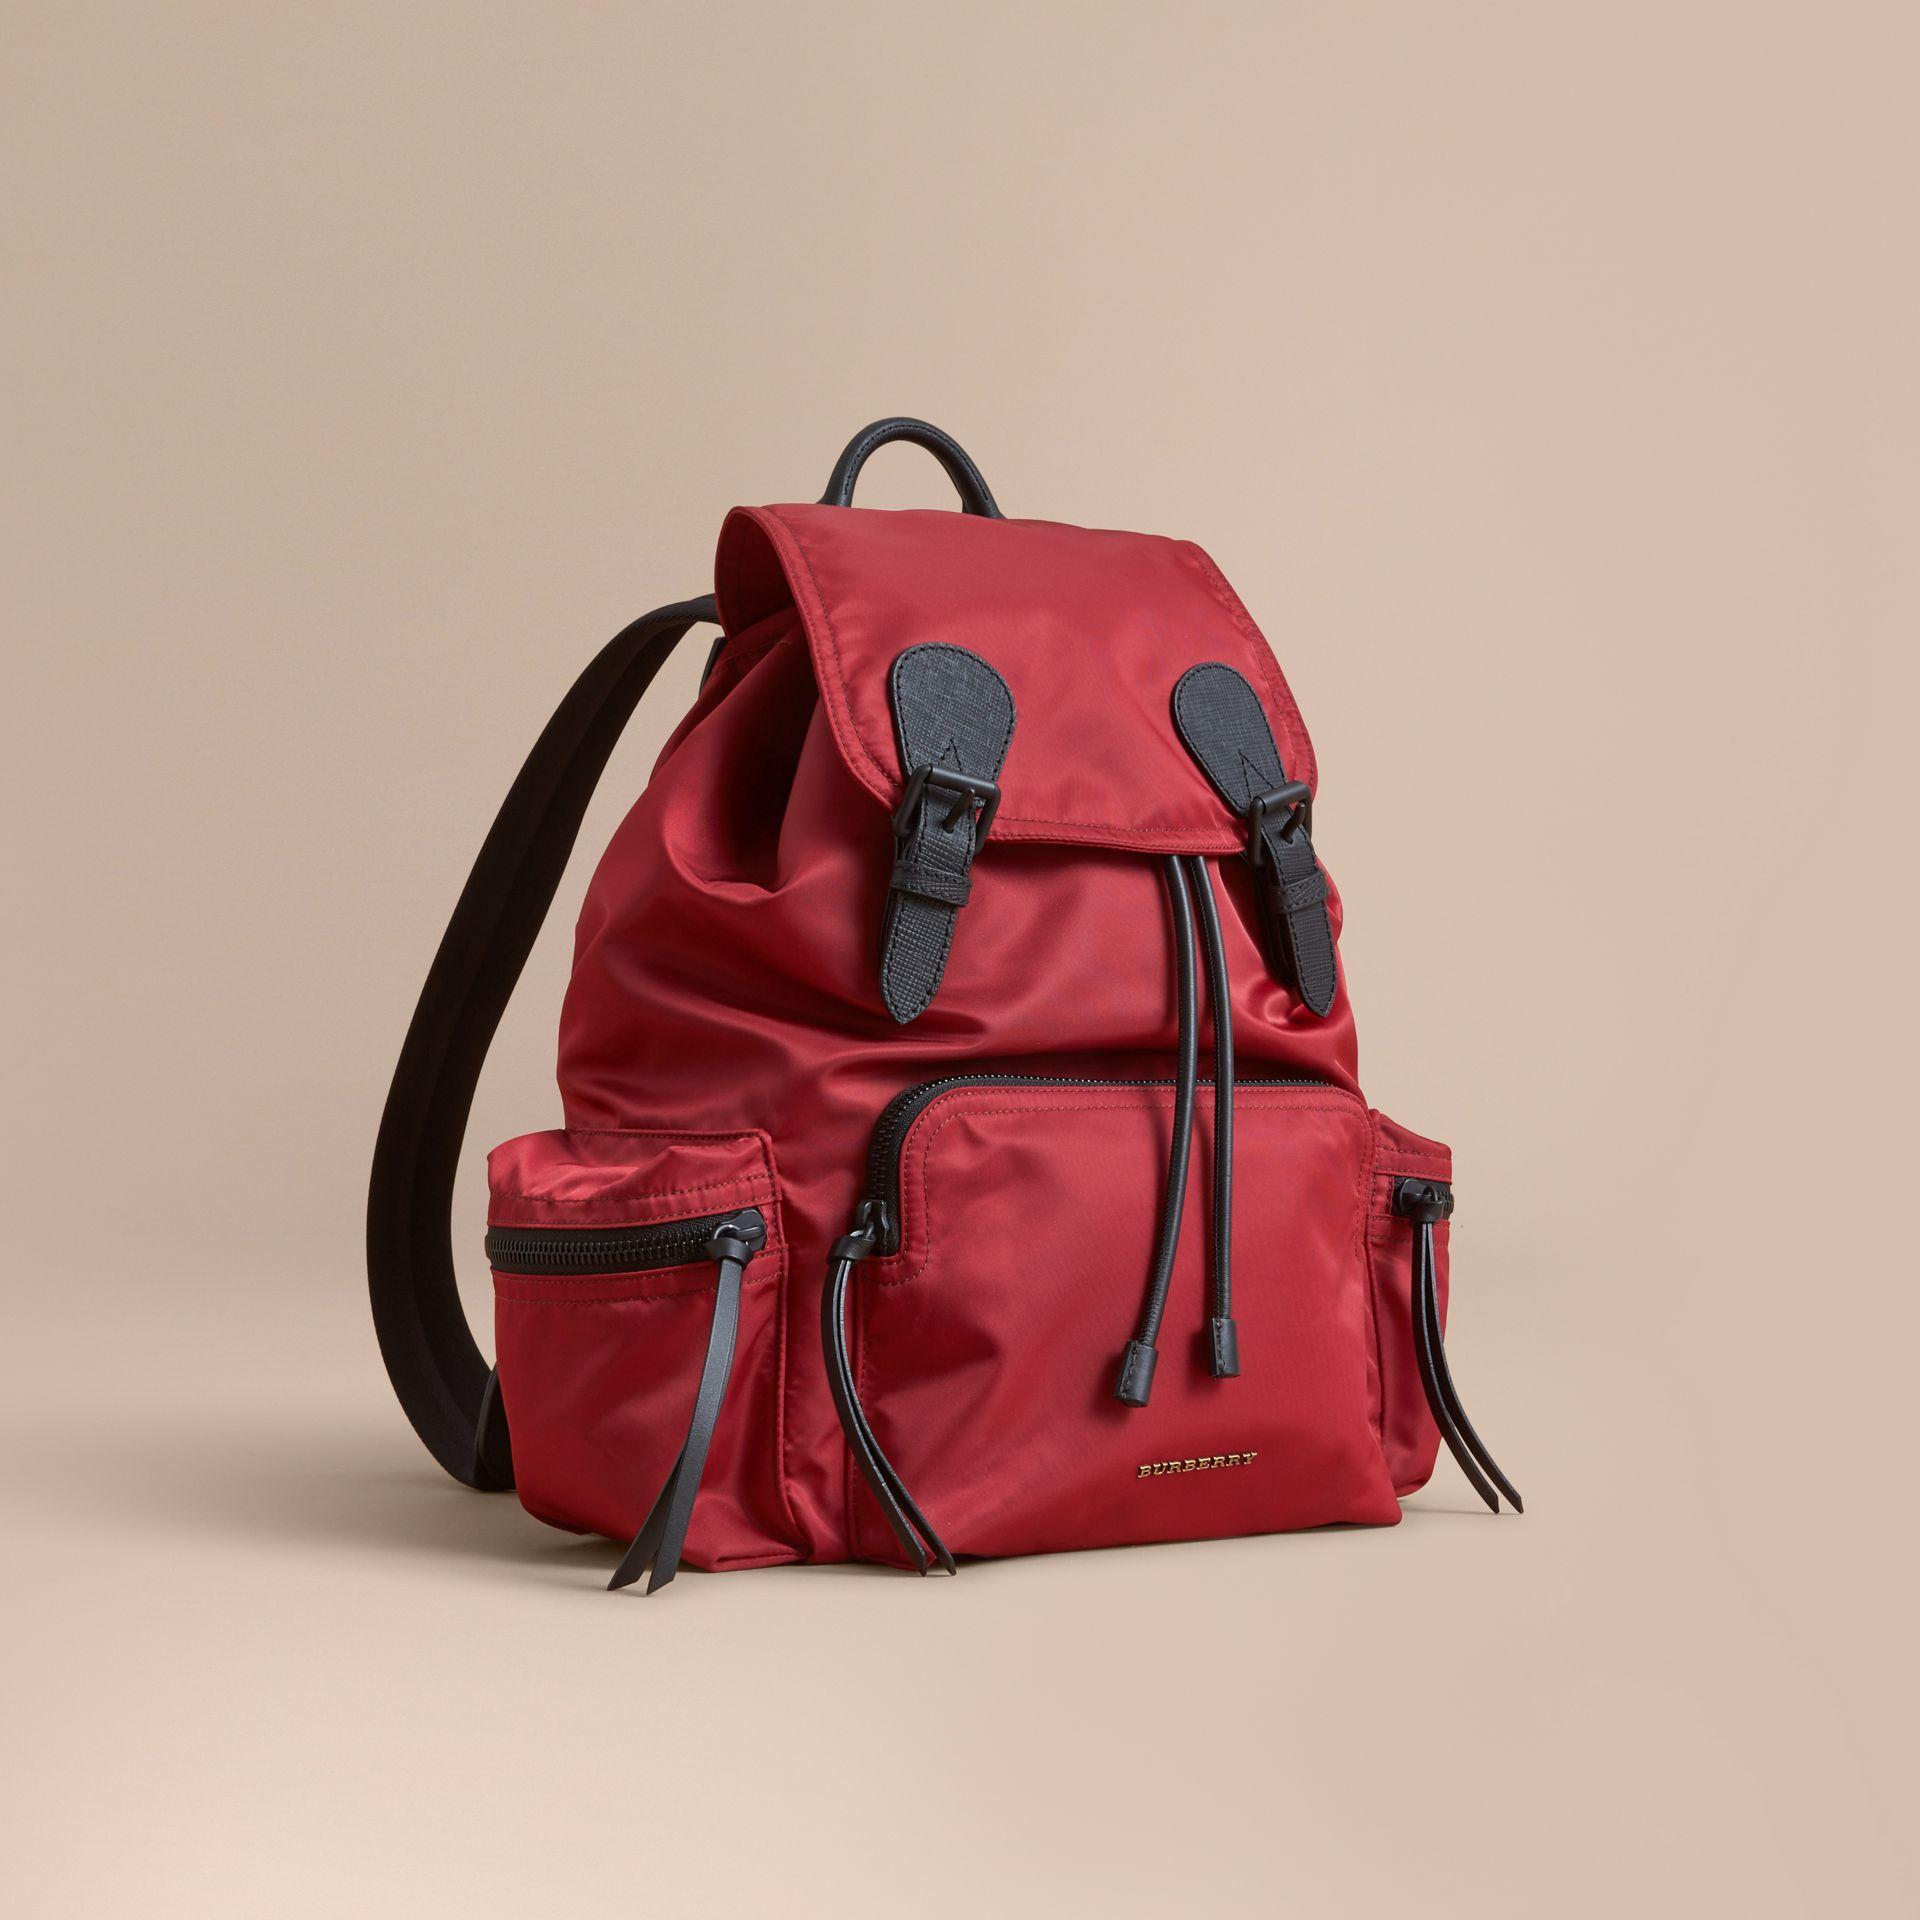 da9d3a6b807 Lyst - Burberry The Large Rucksack In Technical Nylon And Leather ...